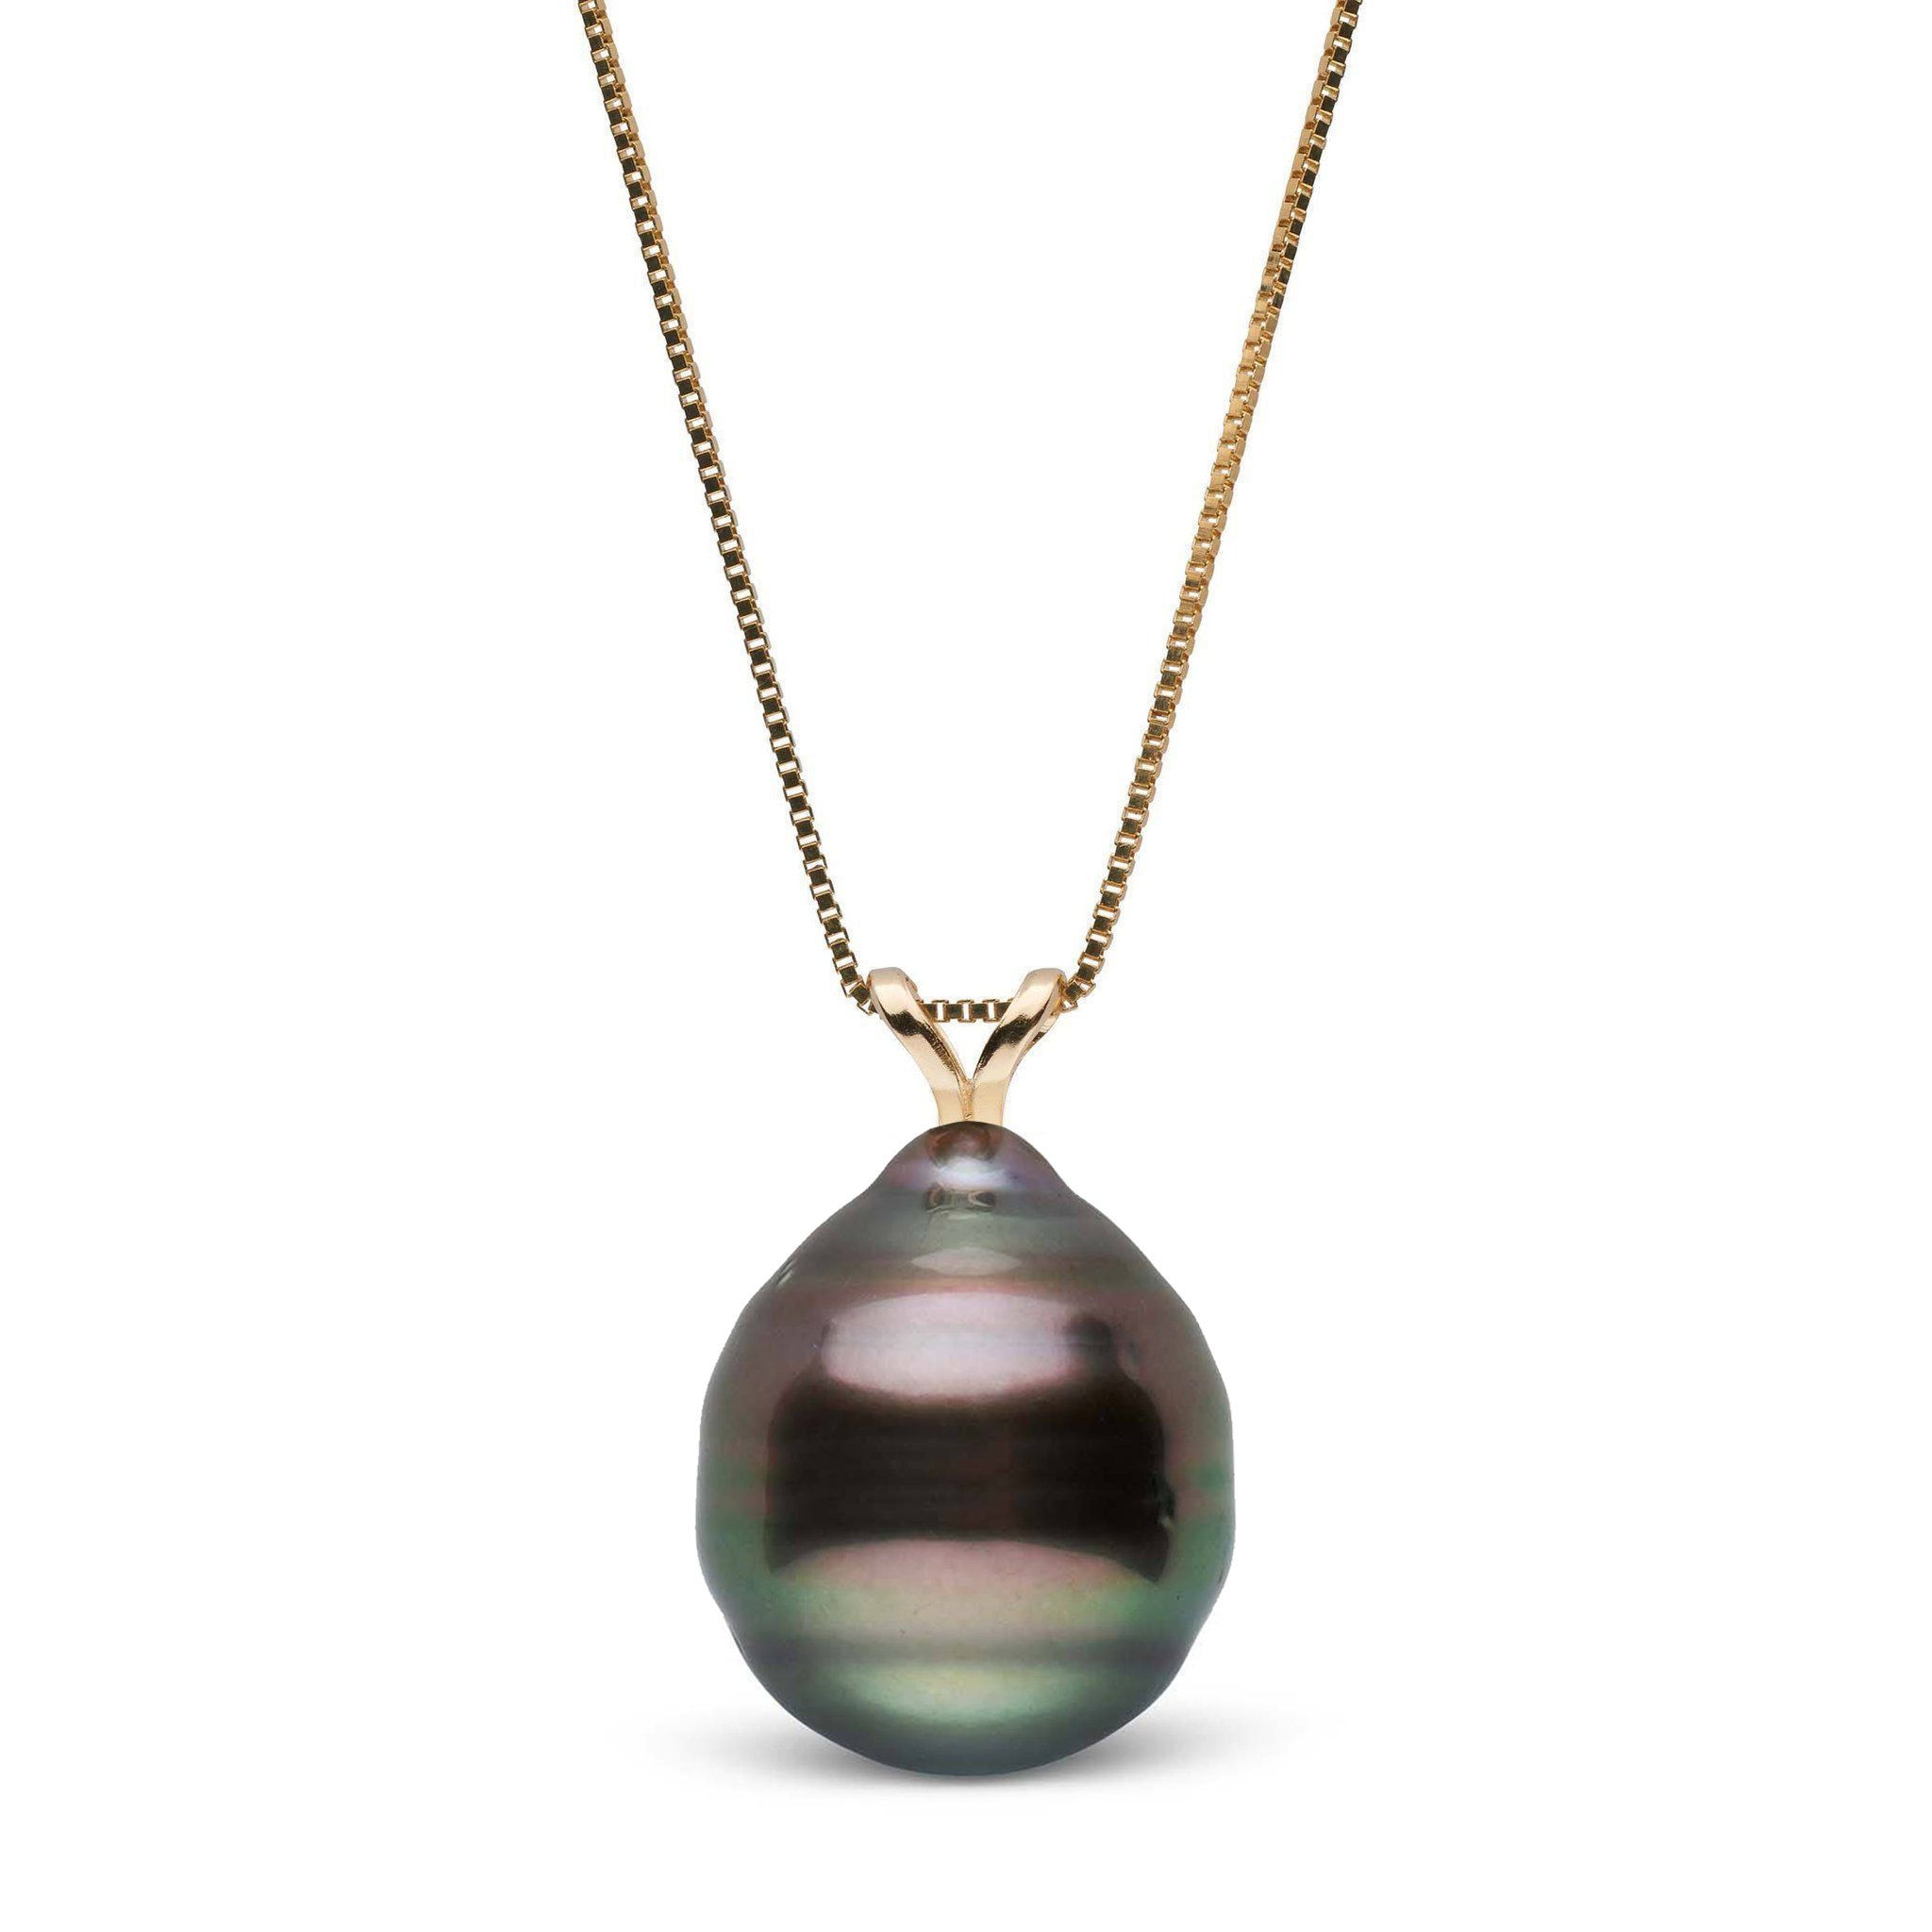 Unity Collection 11.0-12.0 mm Baroque Tahitian Pearl Pendant